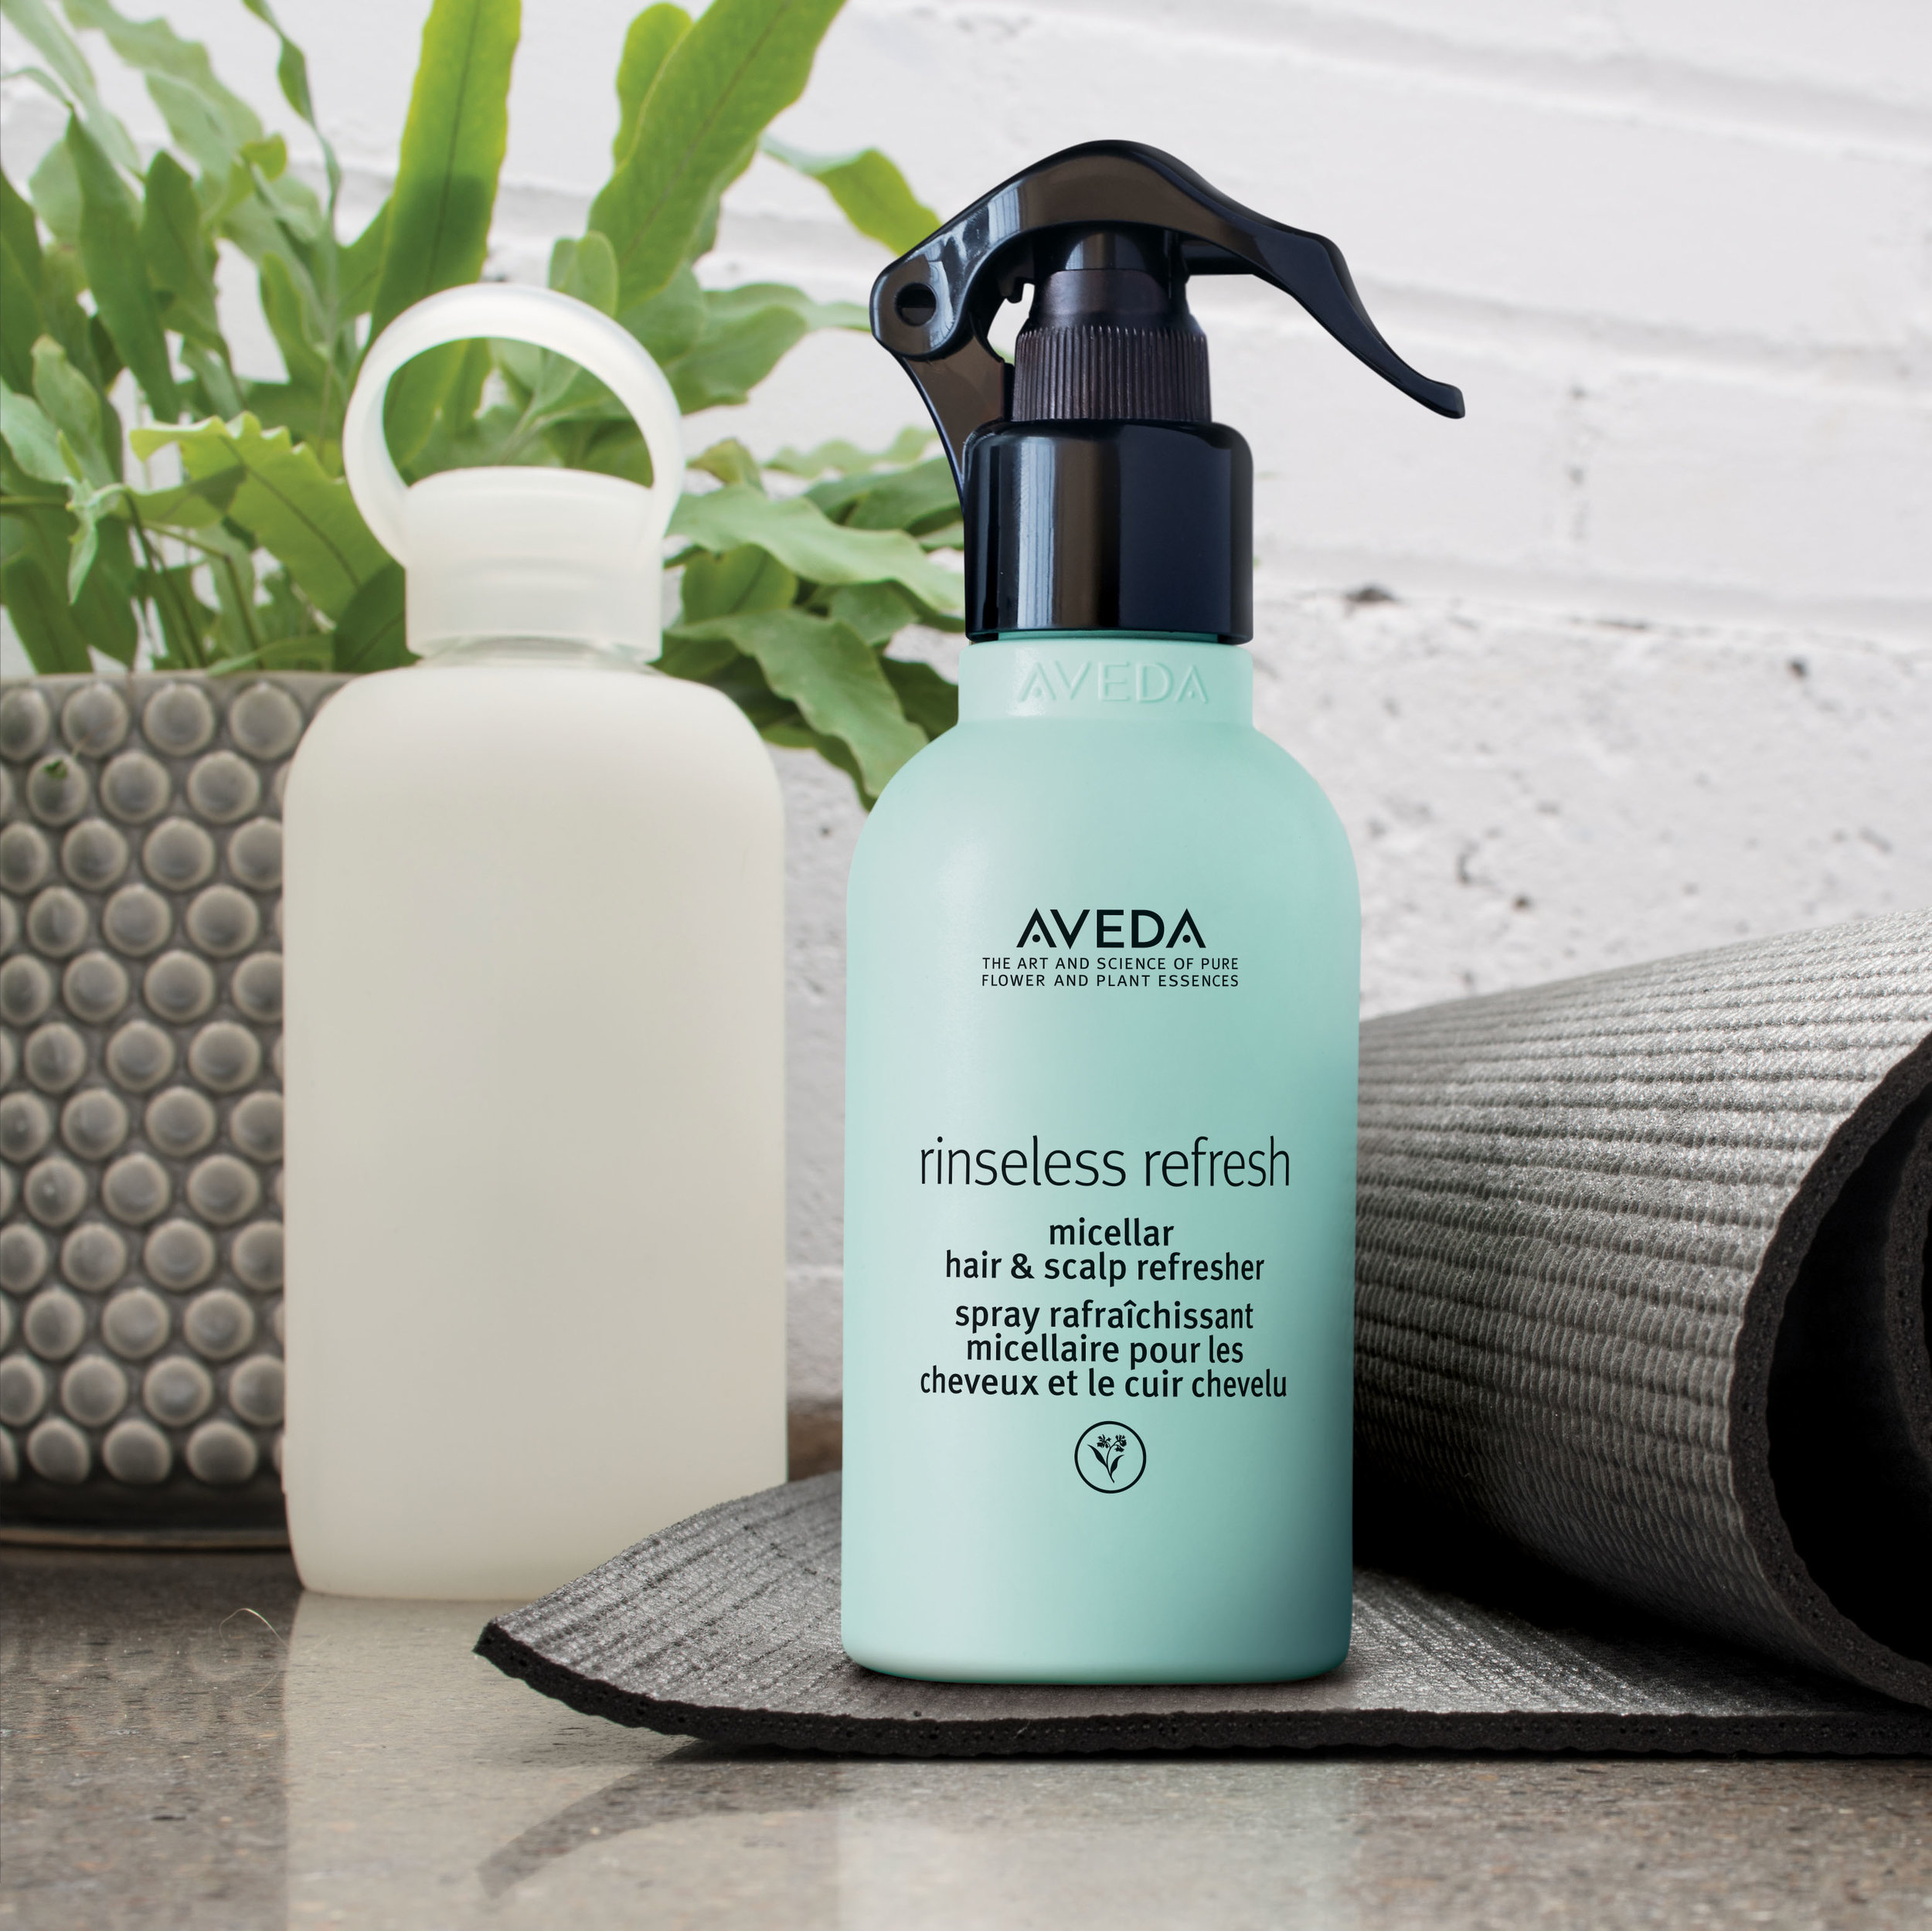 REFRESH YOUR HAIR - Anytime, Anywhere